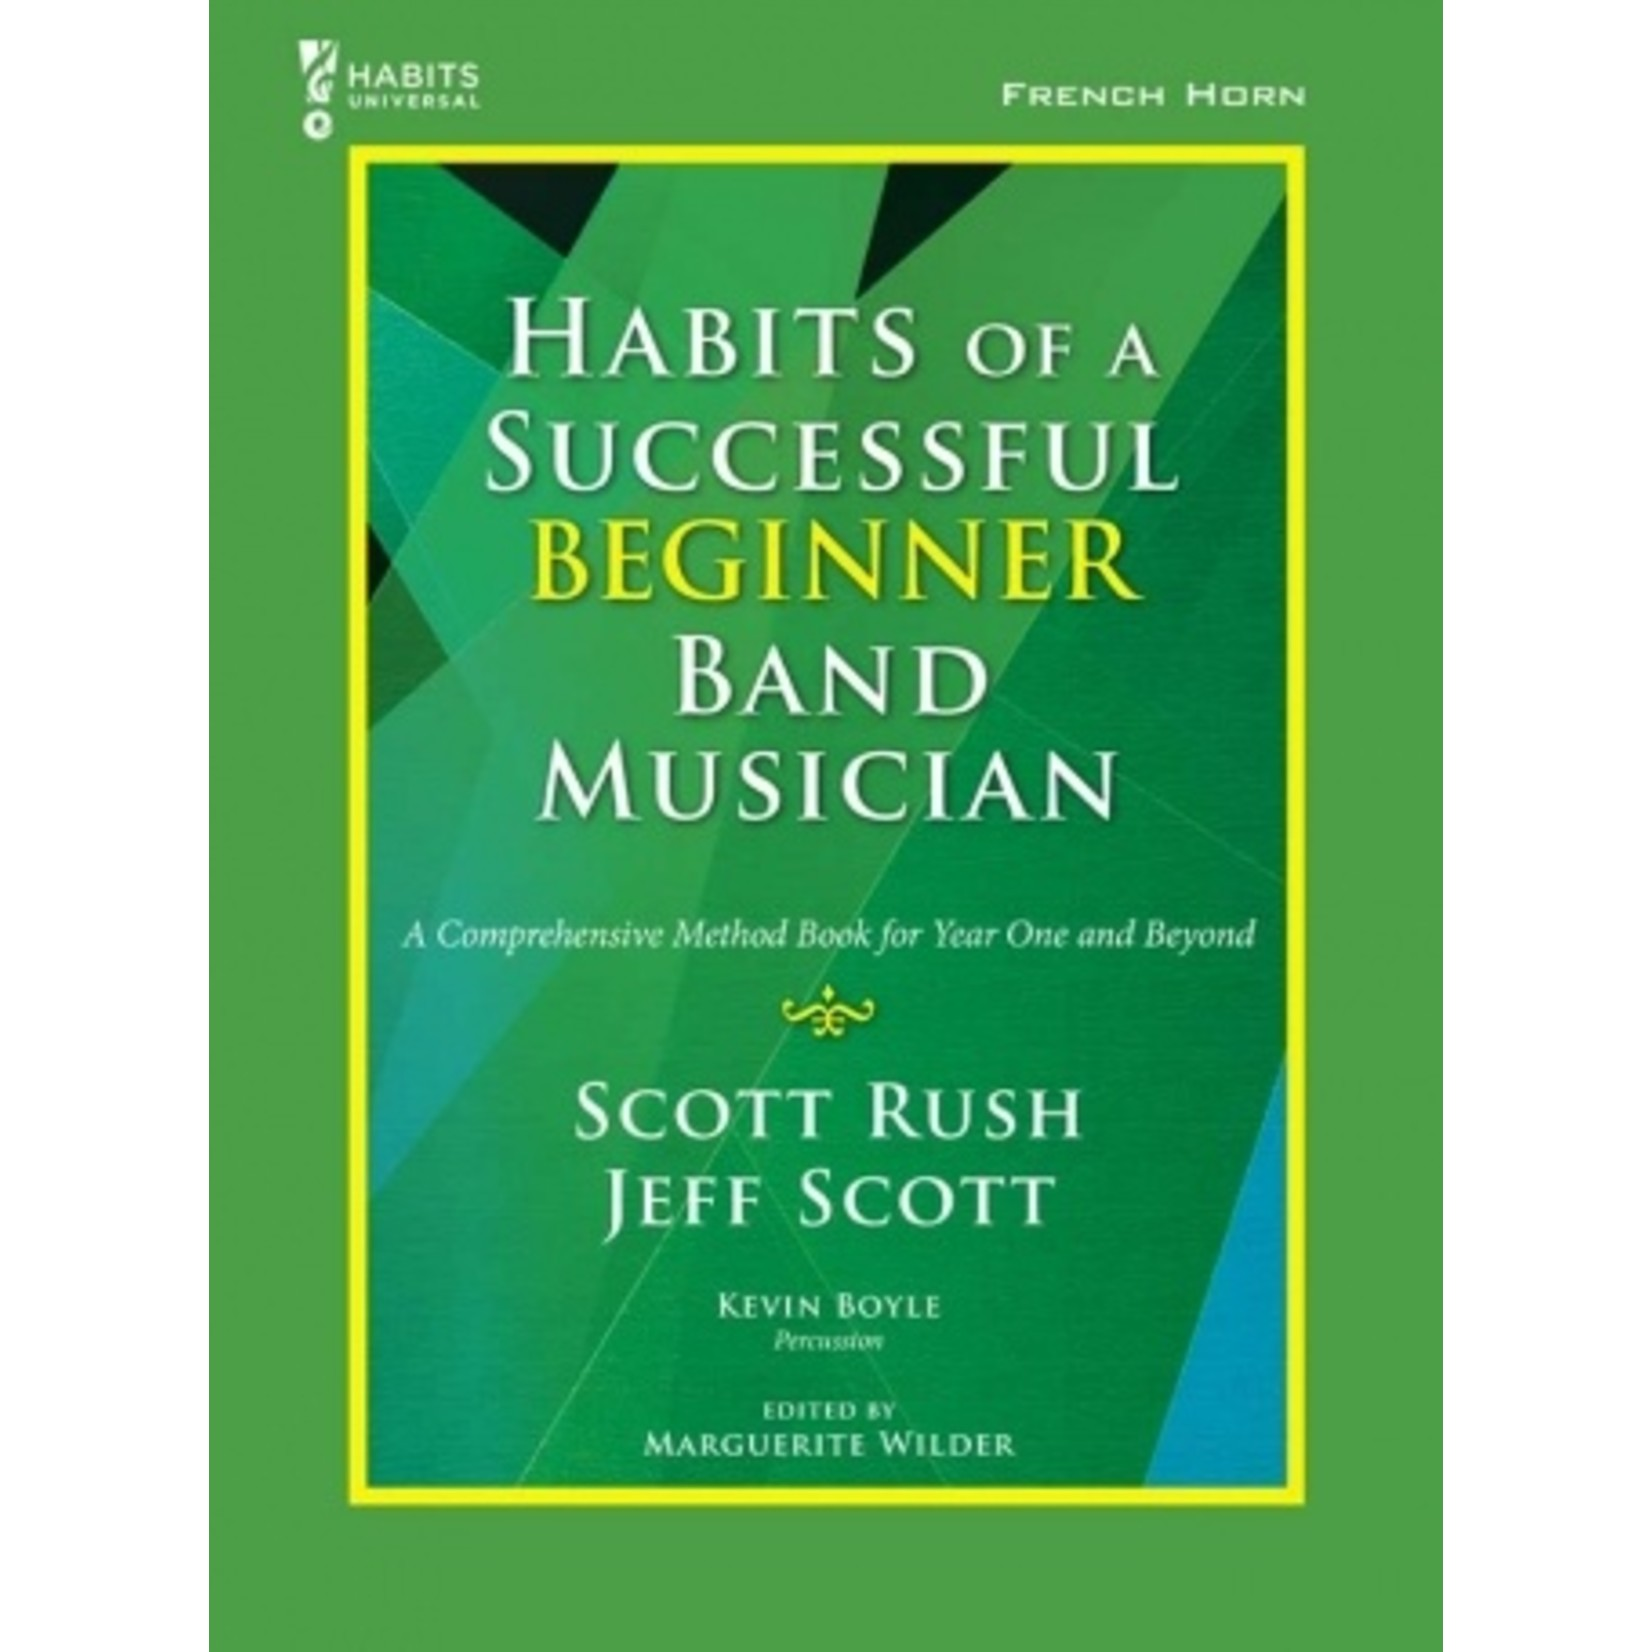 Habits of a Successful Beginner Band Musician - French Horn